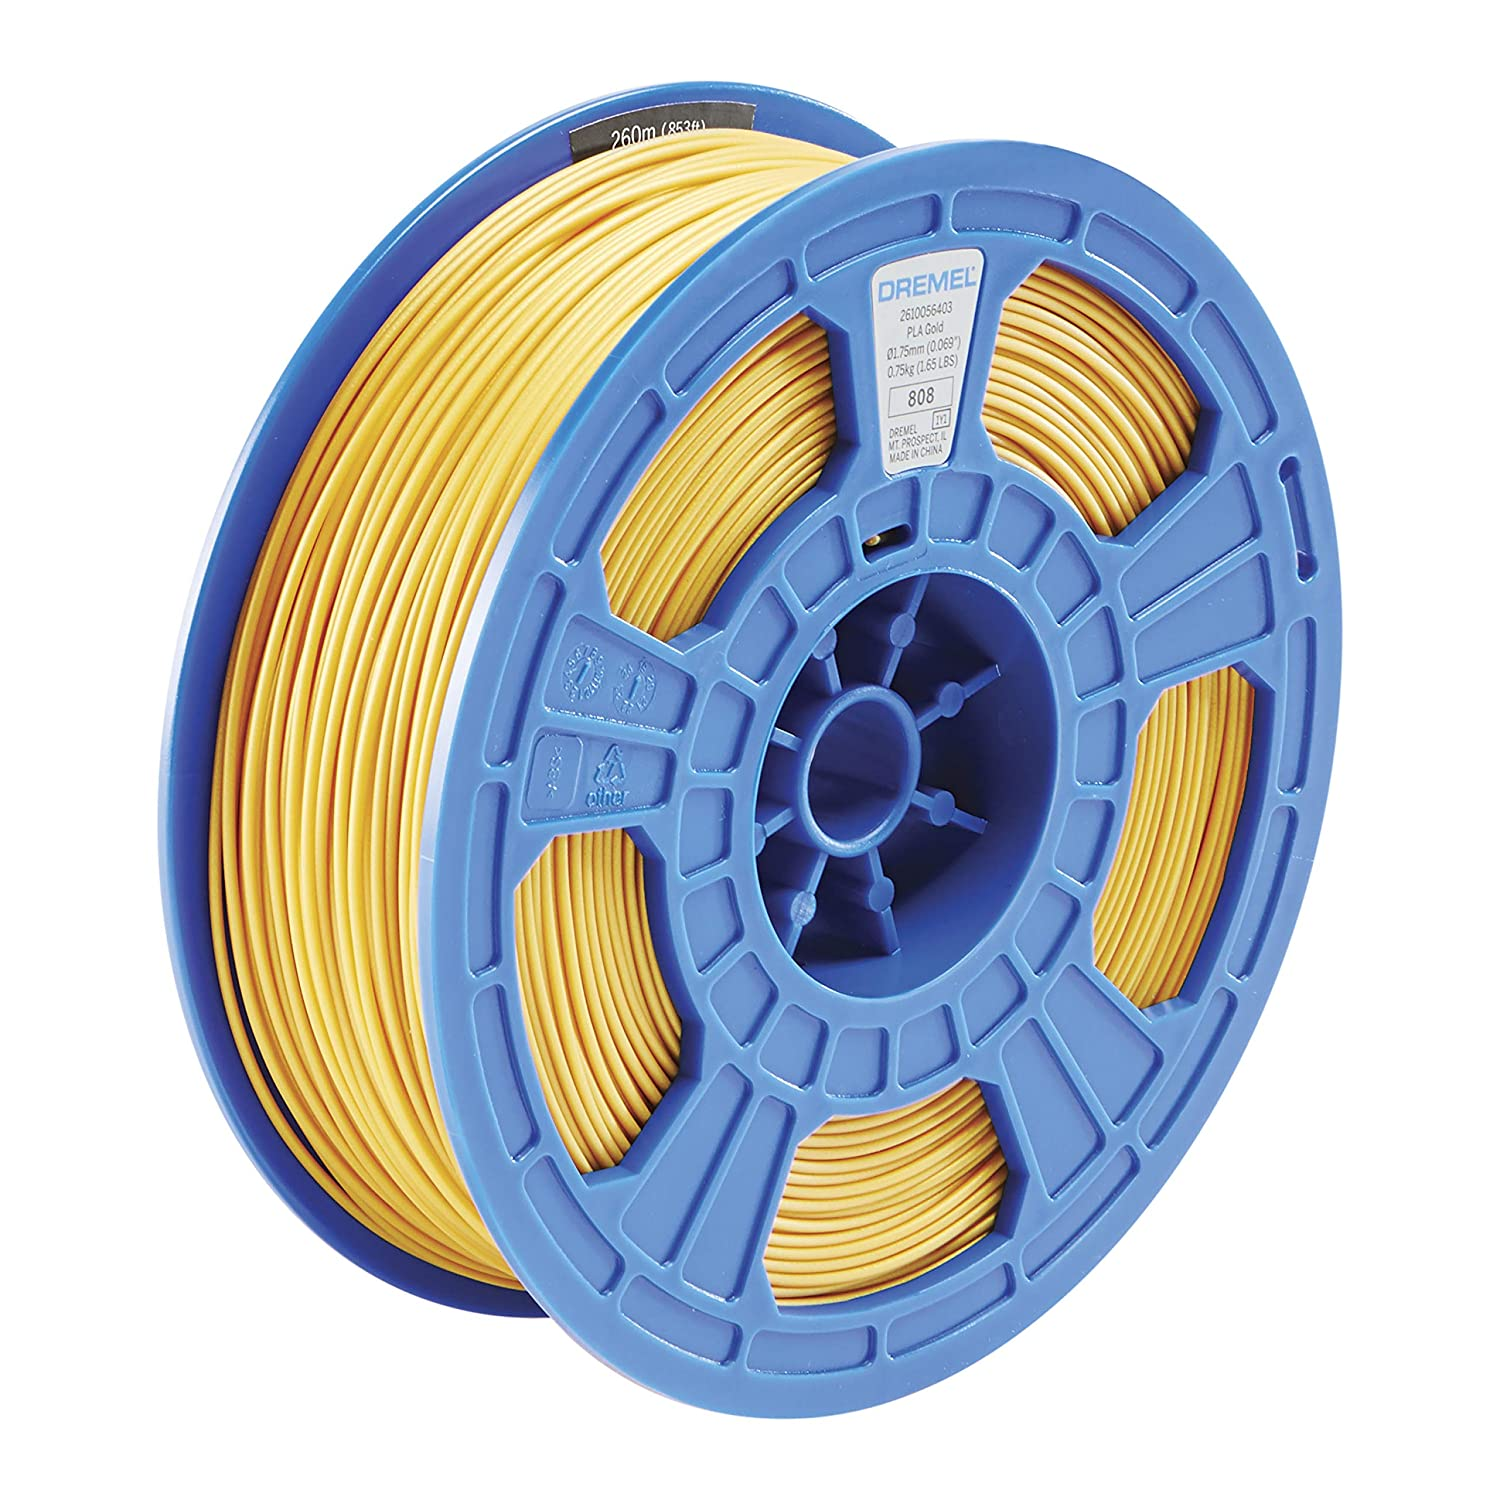 Dremel DigiLab PLA-GOL-01 3D Printer Filament, 1.75 mm Diameter, 0.75 kg Spool Weight, Gold, RFID Enabled, New Formula and 50 Percent More per Spool